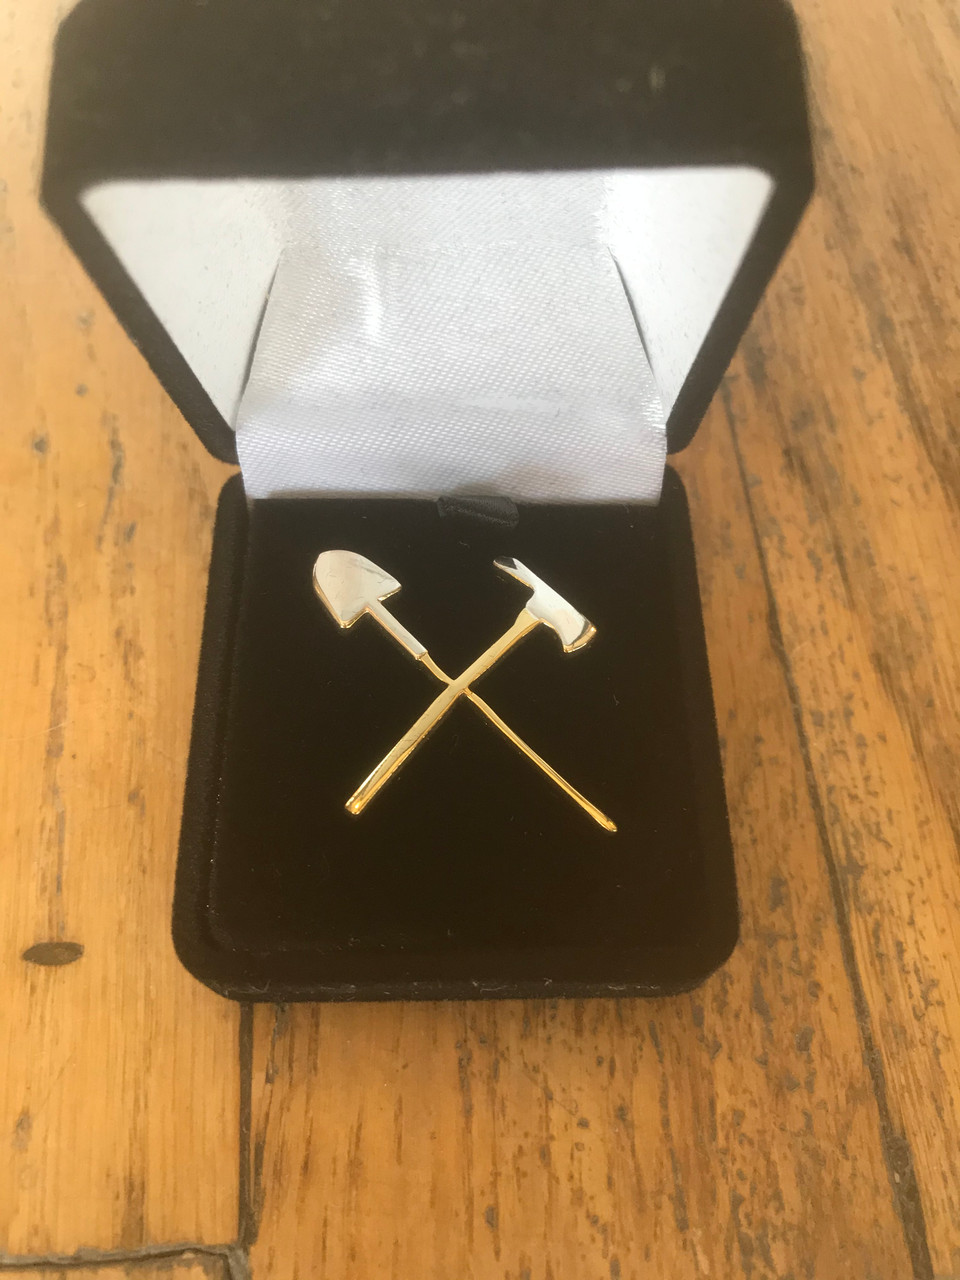 Crossed Tool Clearance Pin